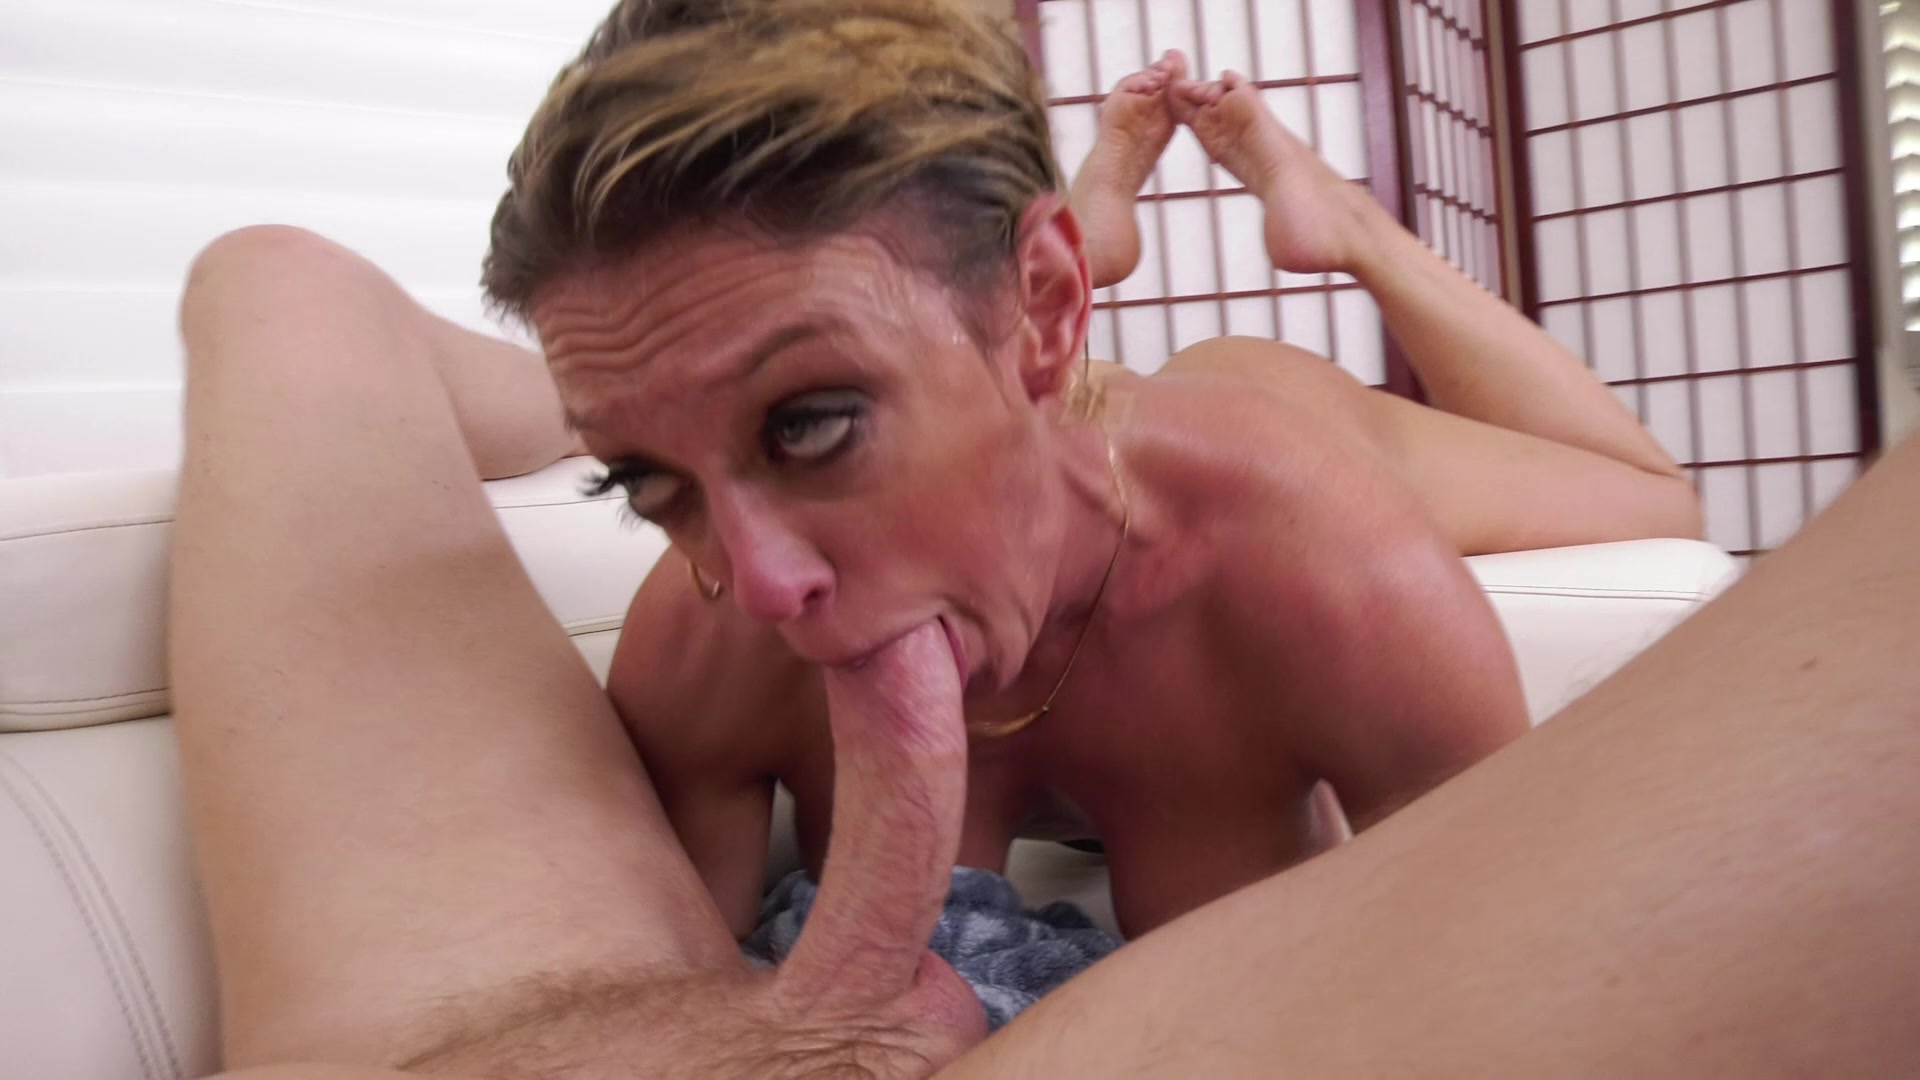 American milf dee williams admires her pussy in the mirror 10